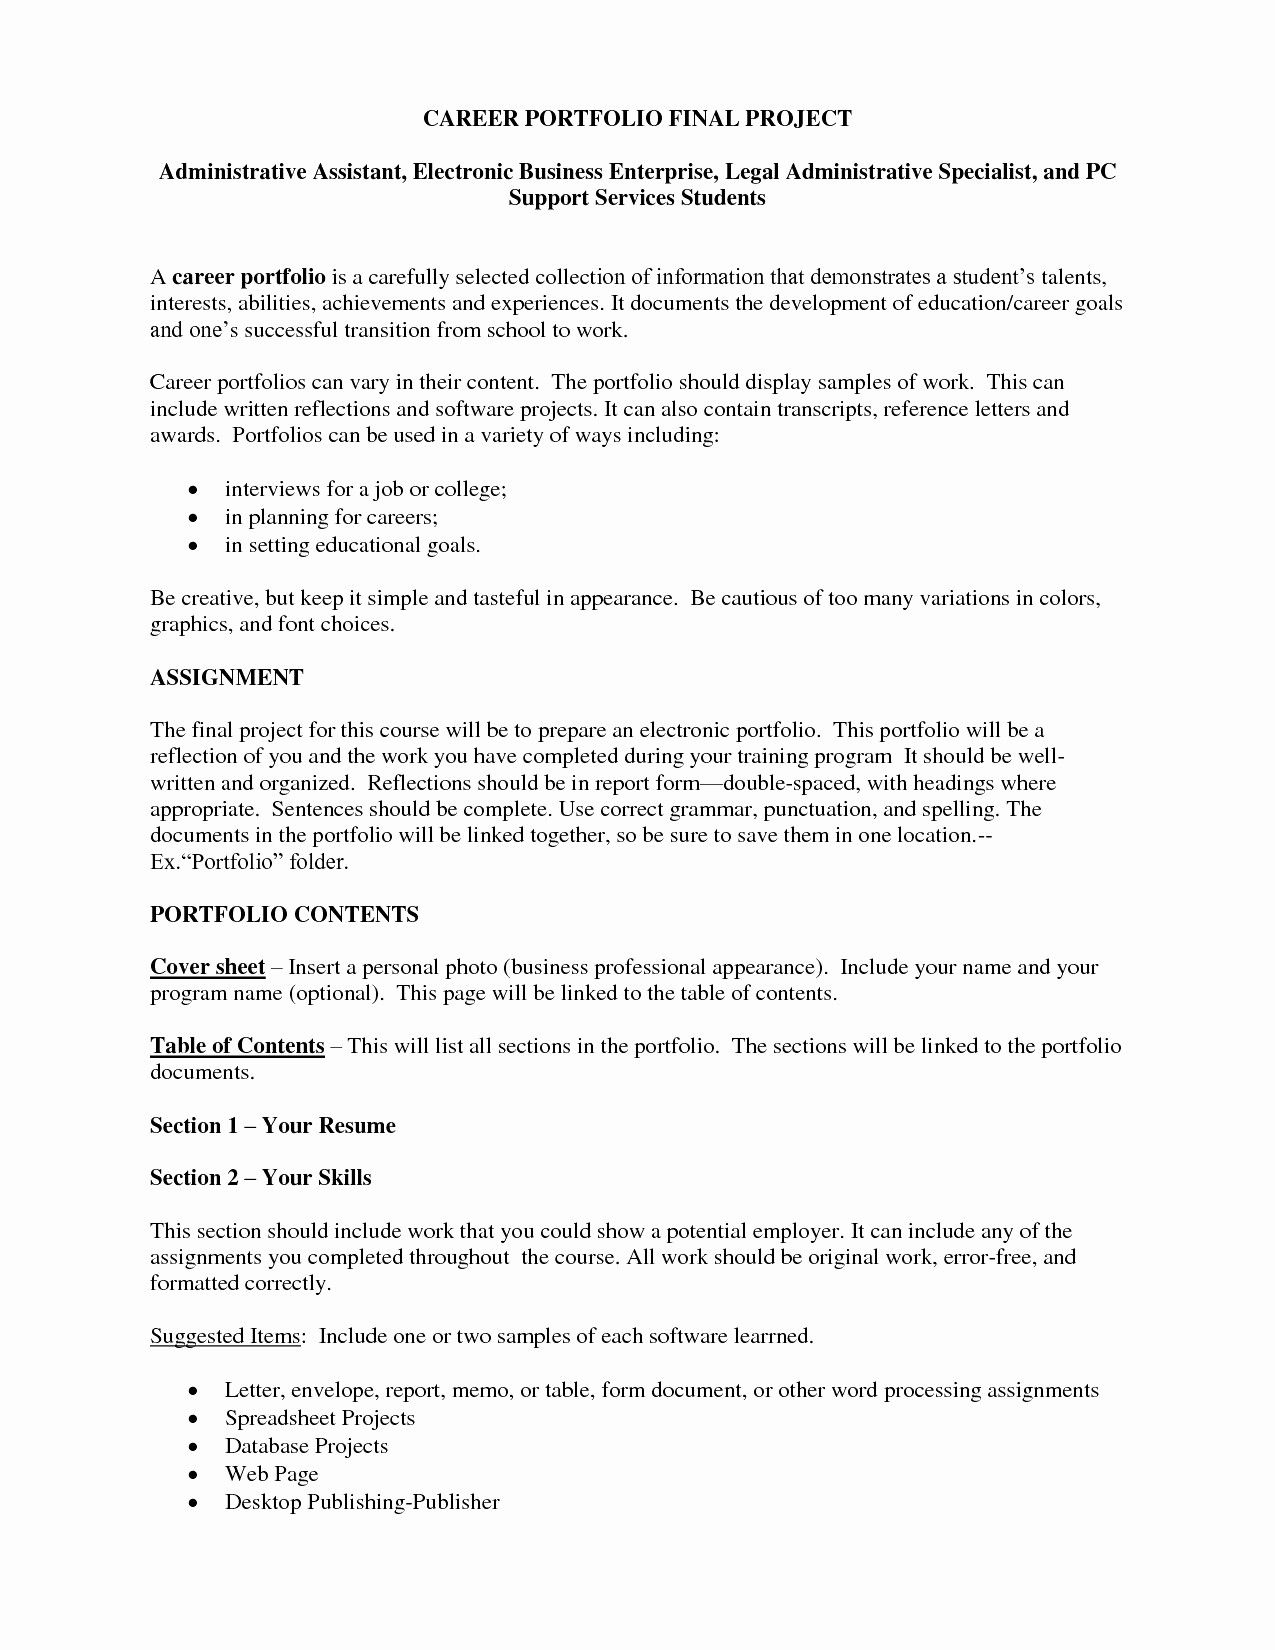 The Necessary Tips To Write The Best Administrative Assistant Co Administrative Assistant Resume Administrative Assistant Cover Letter Administrative Assistant